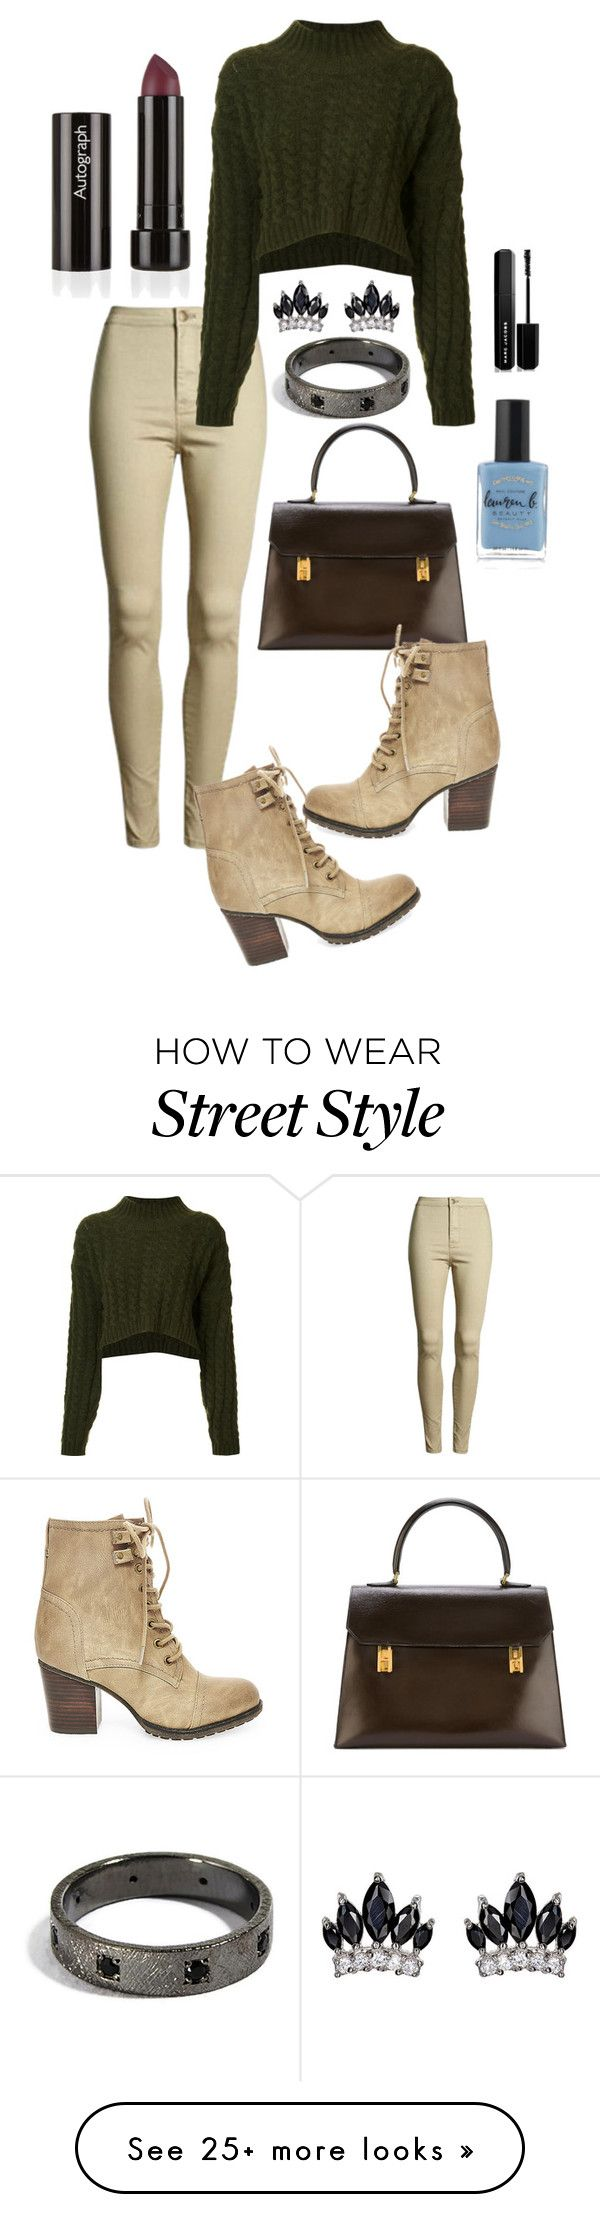 """""""outfit"""" by cc-carmen on Polyvore featuring Vivienne Westwood Anglomania, Steve Madden, Fallon, Hermès, Marc Jacobs, Lauren B. Beauty, outfit, booties and wintersweater"""